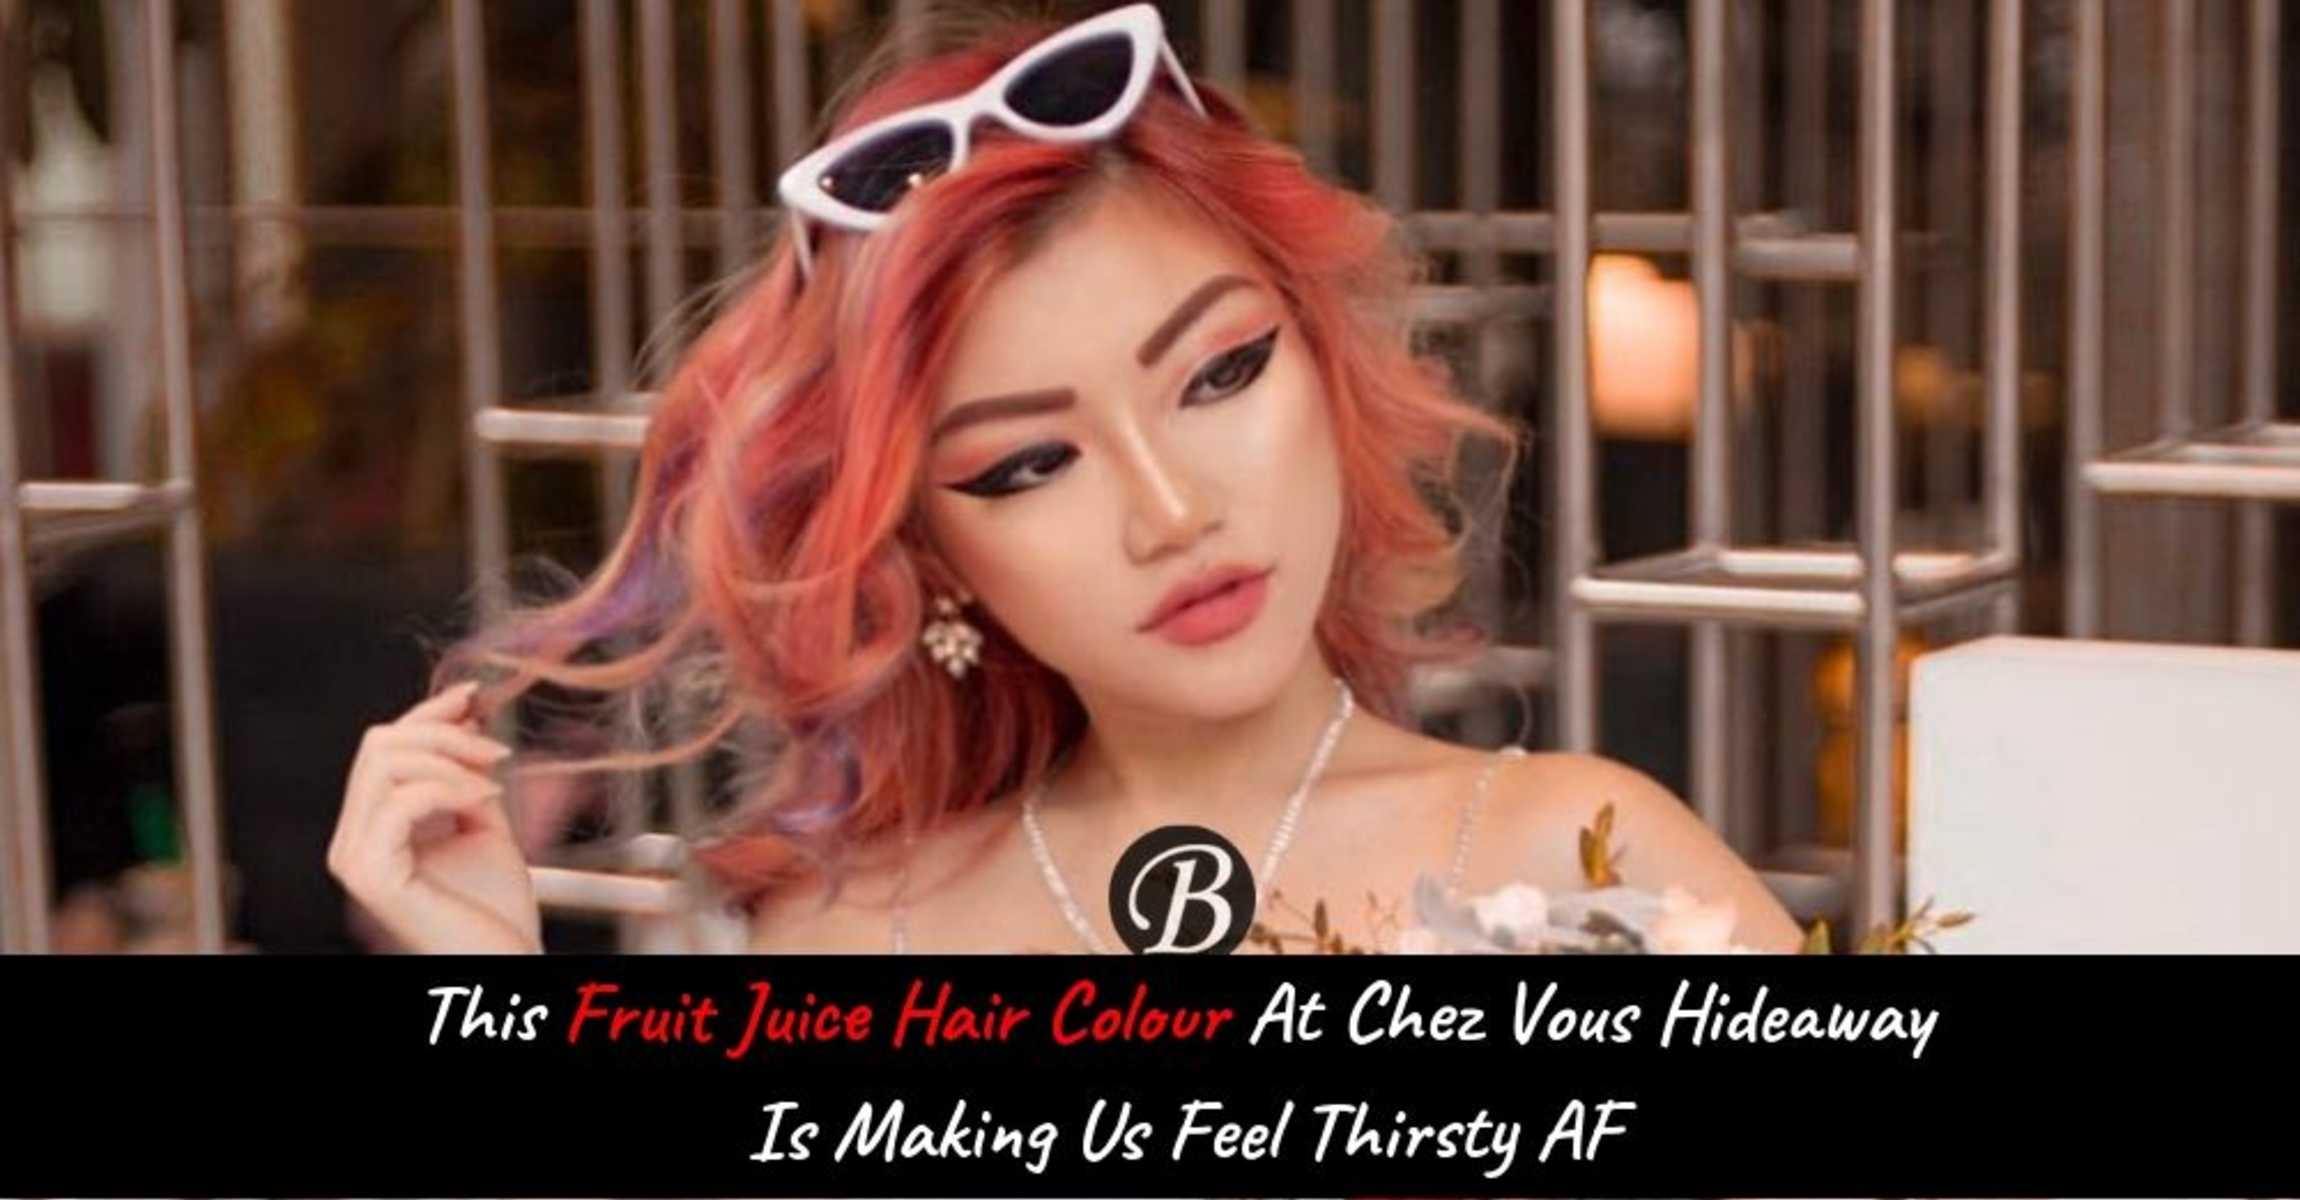 Popular Influencer @sabbythecat Got Her Fruit Juice Hair done at Chez Vous Hideaway and It's Making Us Feel Thirsty AF